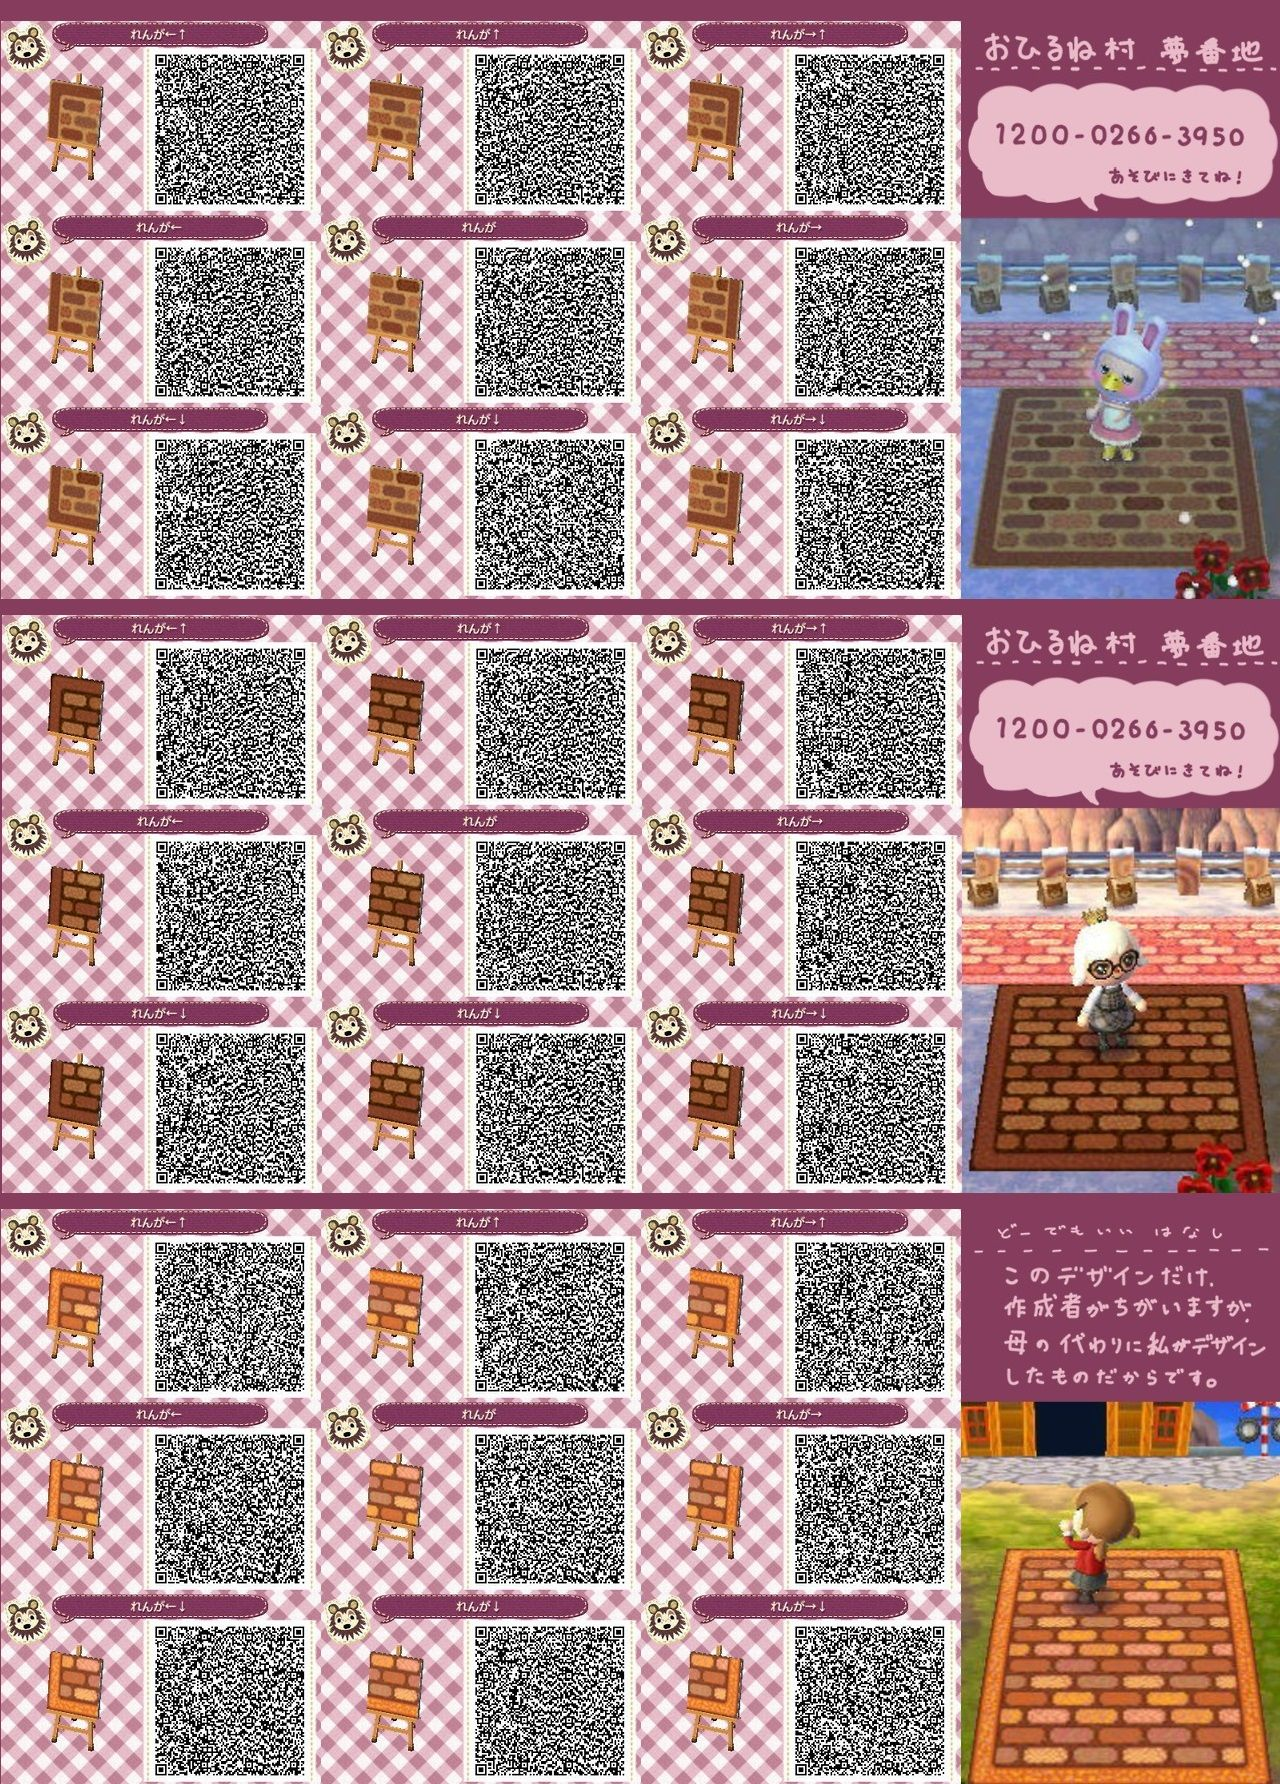 Multiple Colored Bricks Qr Codes Animal Crossing Qr Codes